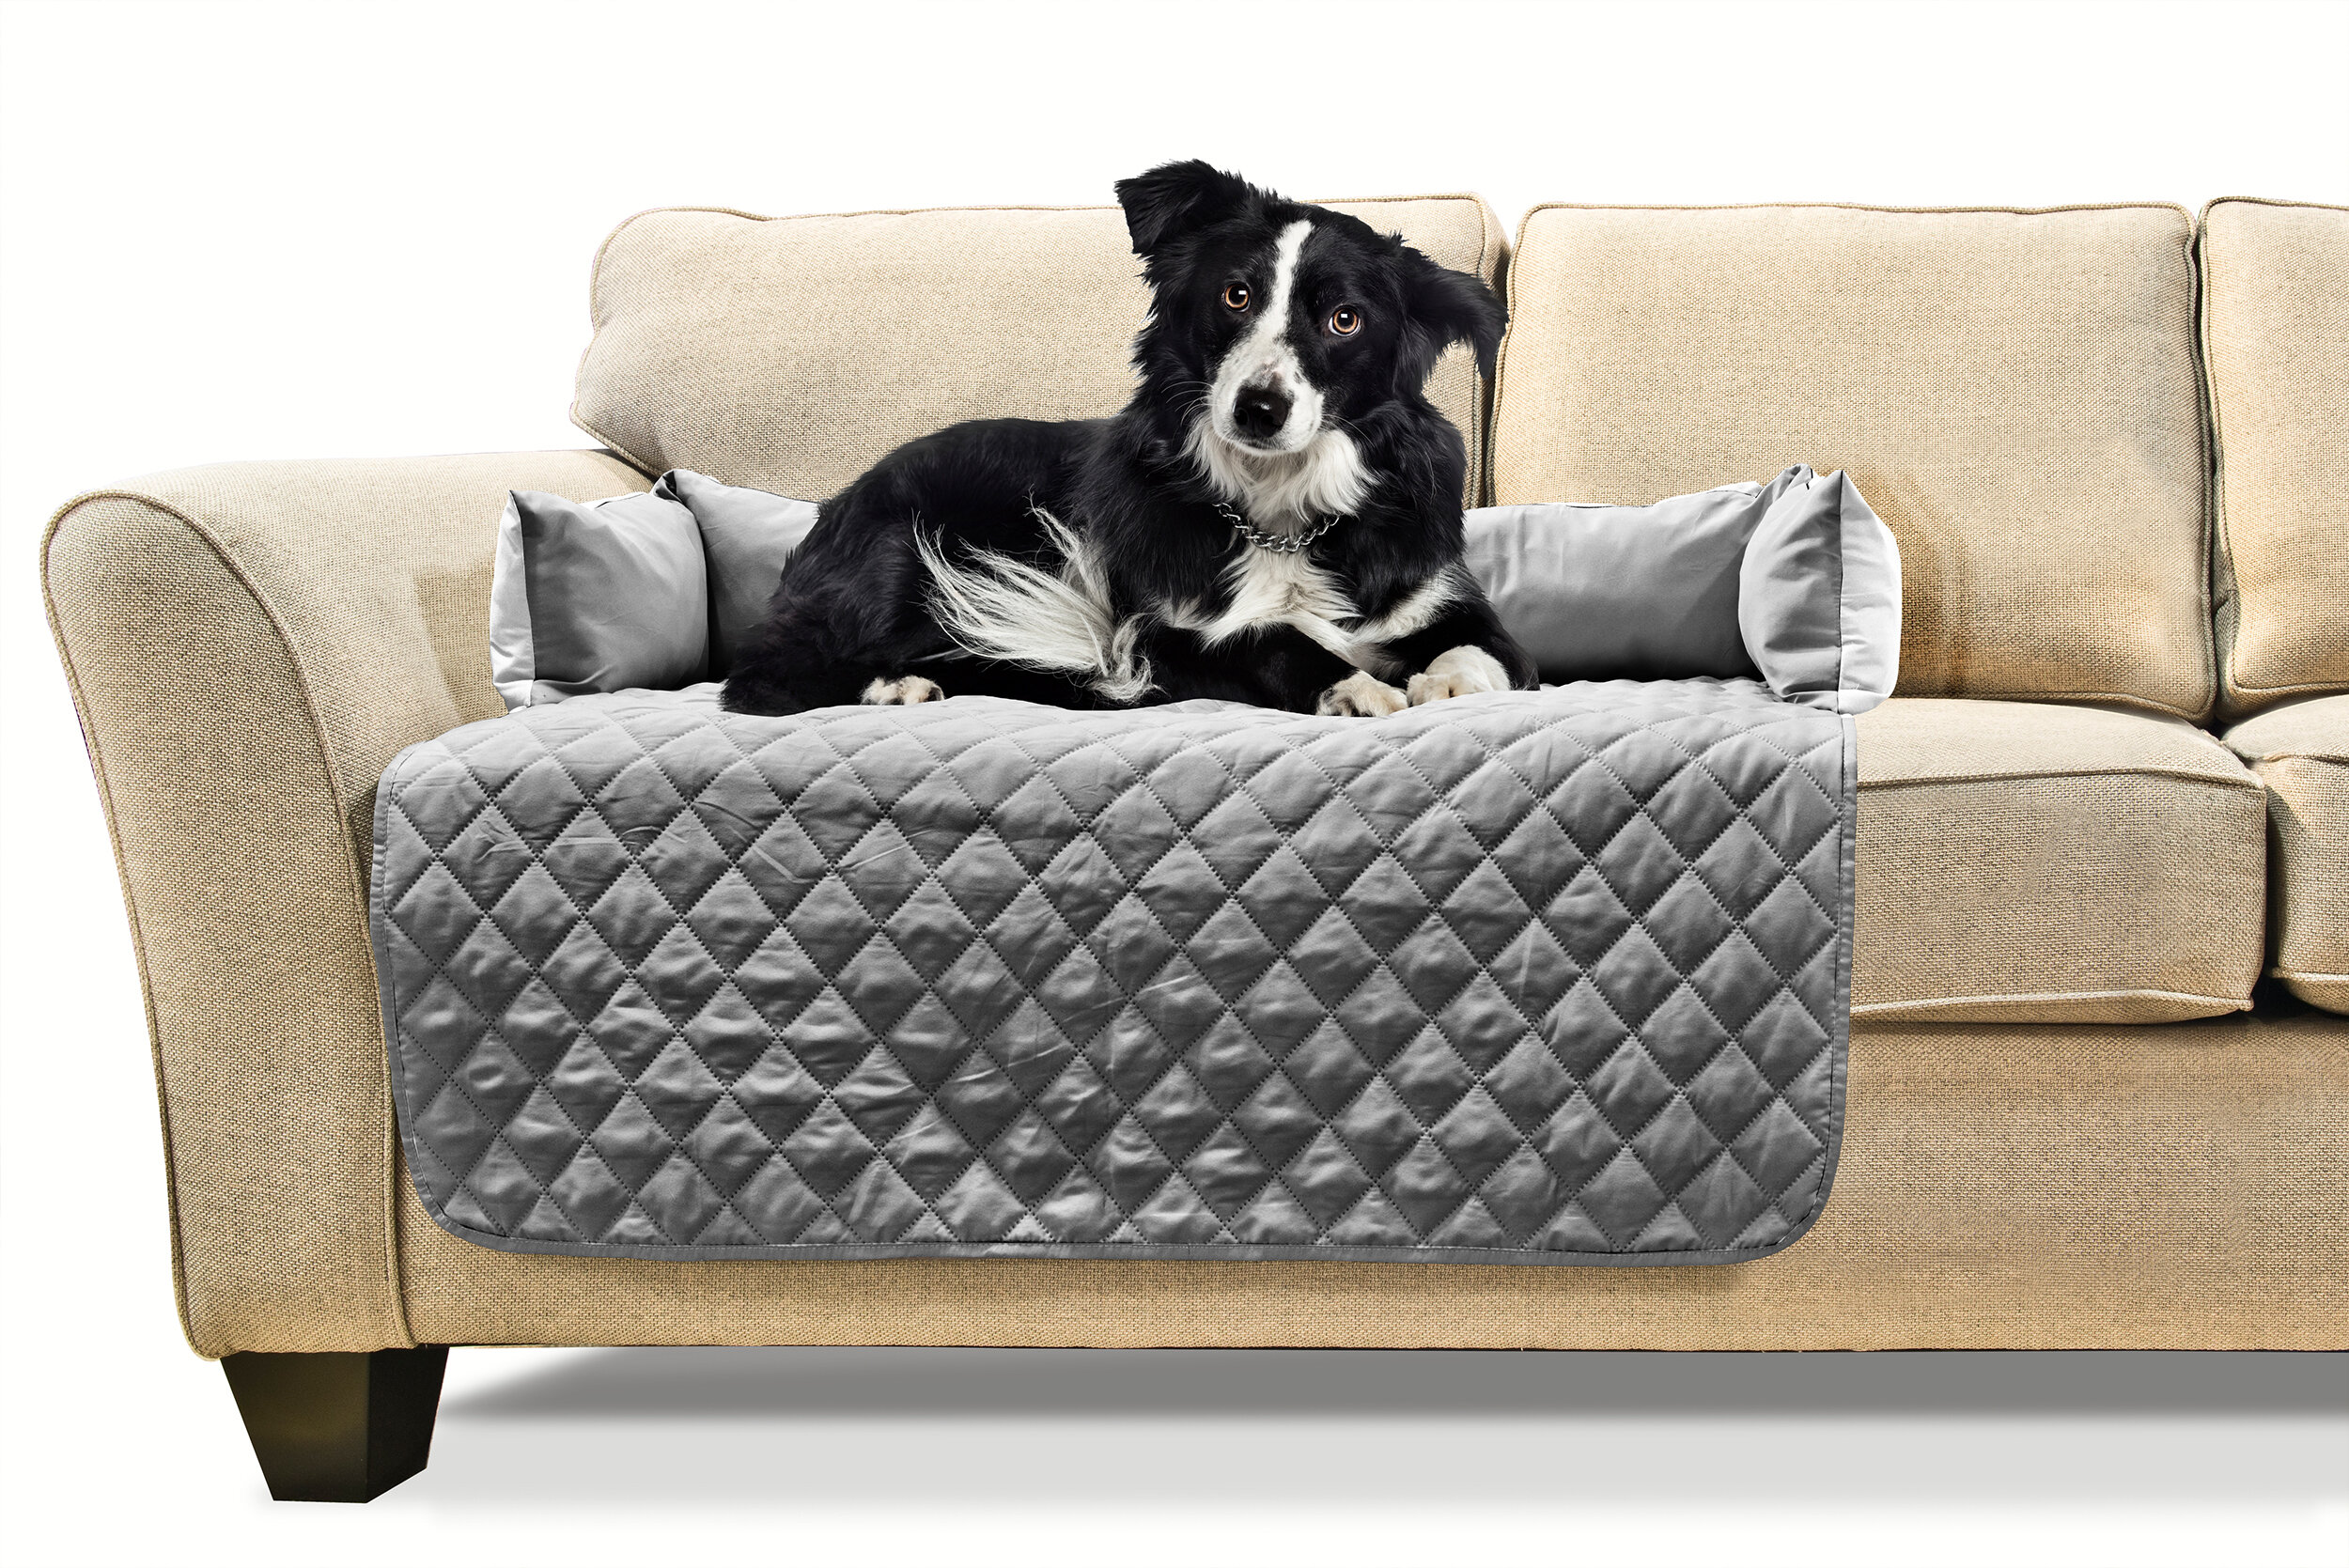 FurHaven Buddy Quilted Box Cushion Sofa Slipcover & Reviews | Wayfair